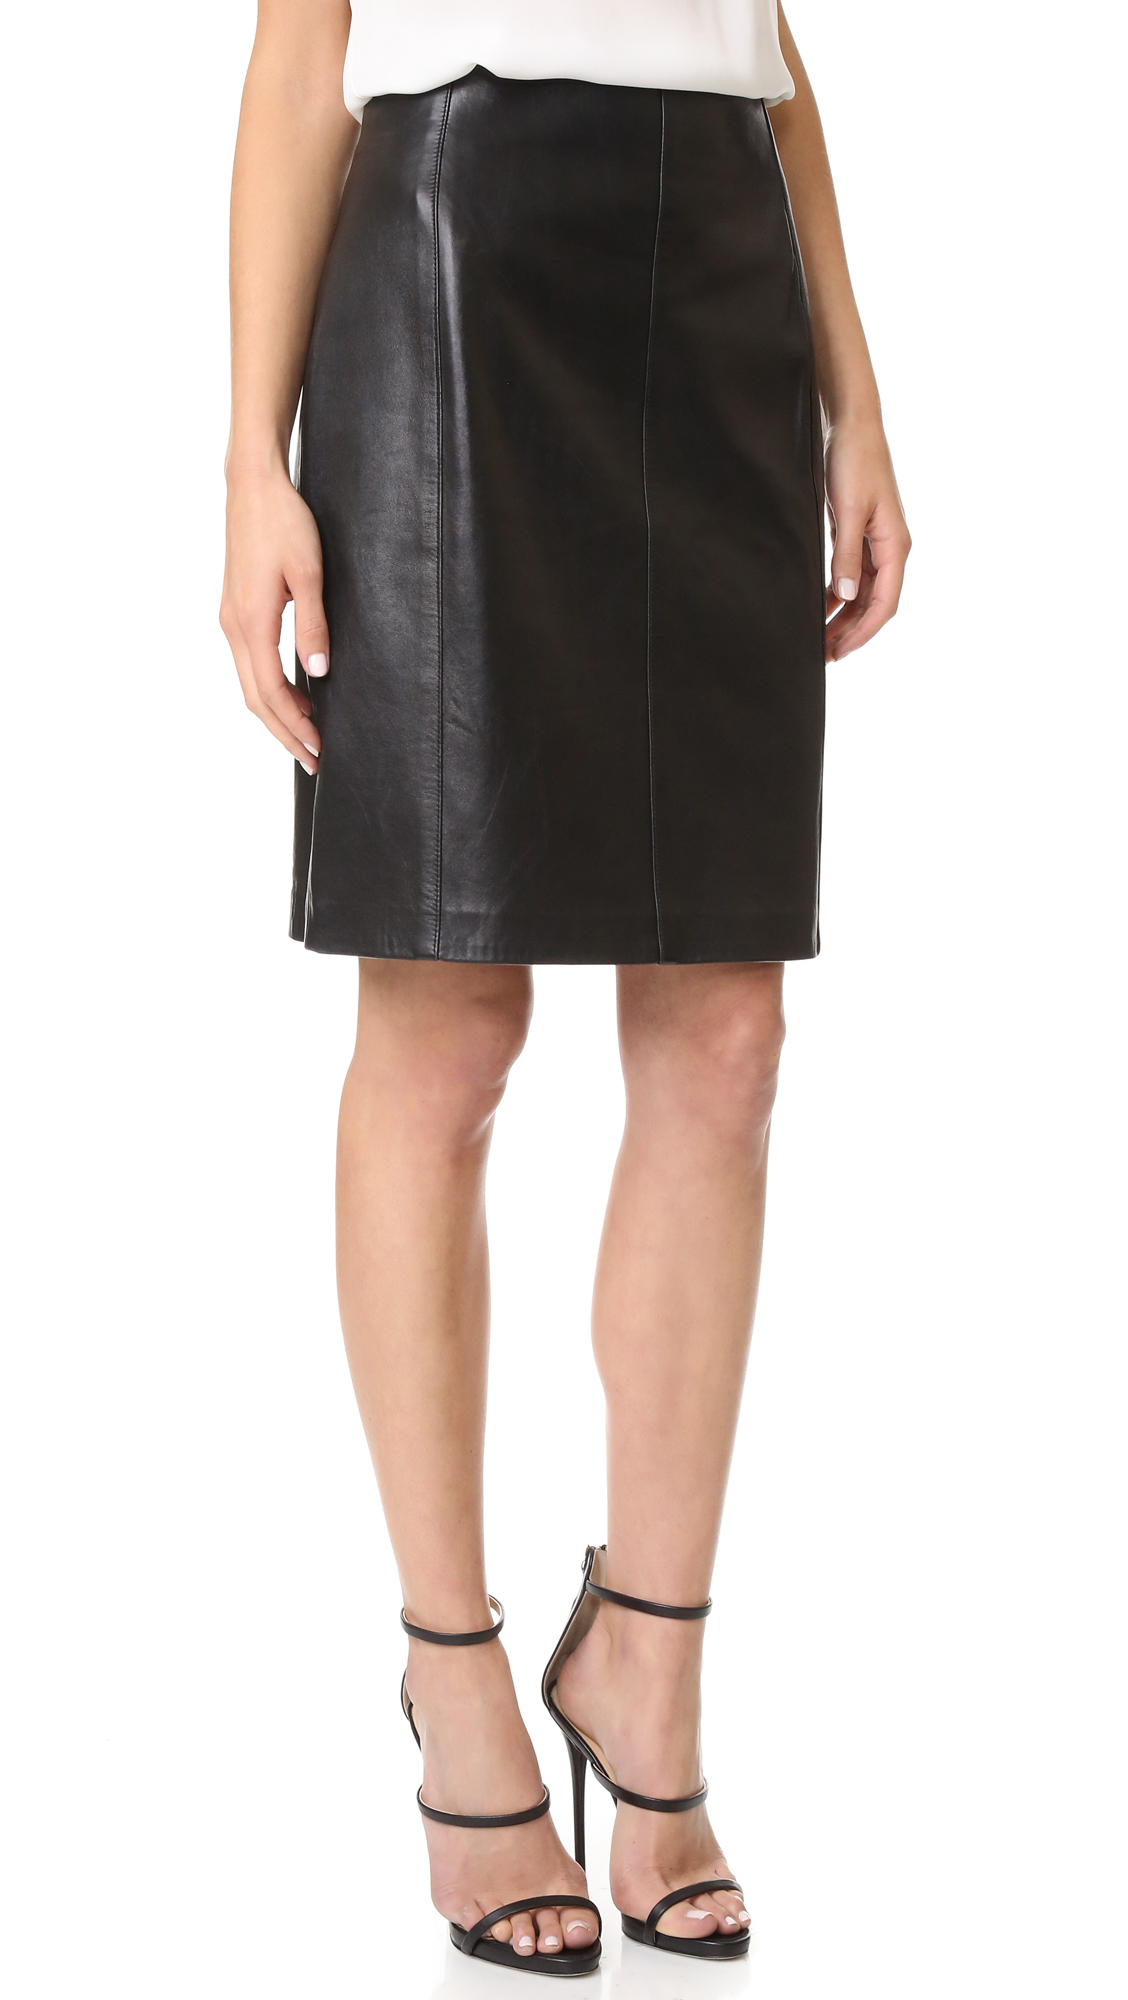 A previously owned Alaia leather skirt with a classic A line profile. Exposed zips create edgy slits in back. Lined. Fabric: Leather. Leather: 100% lambskin. Leather clean. Made in France. NOTE: Gentle wear should be expected and